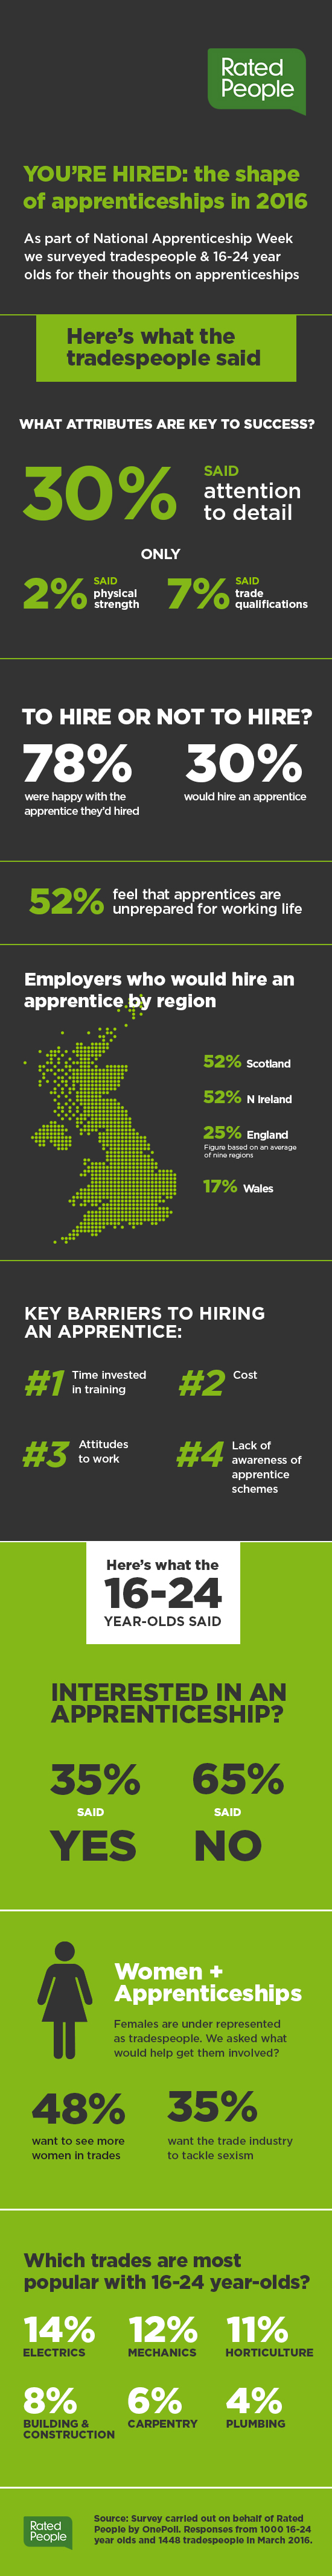 apprentice - infographic final